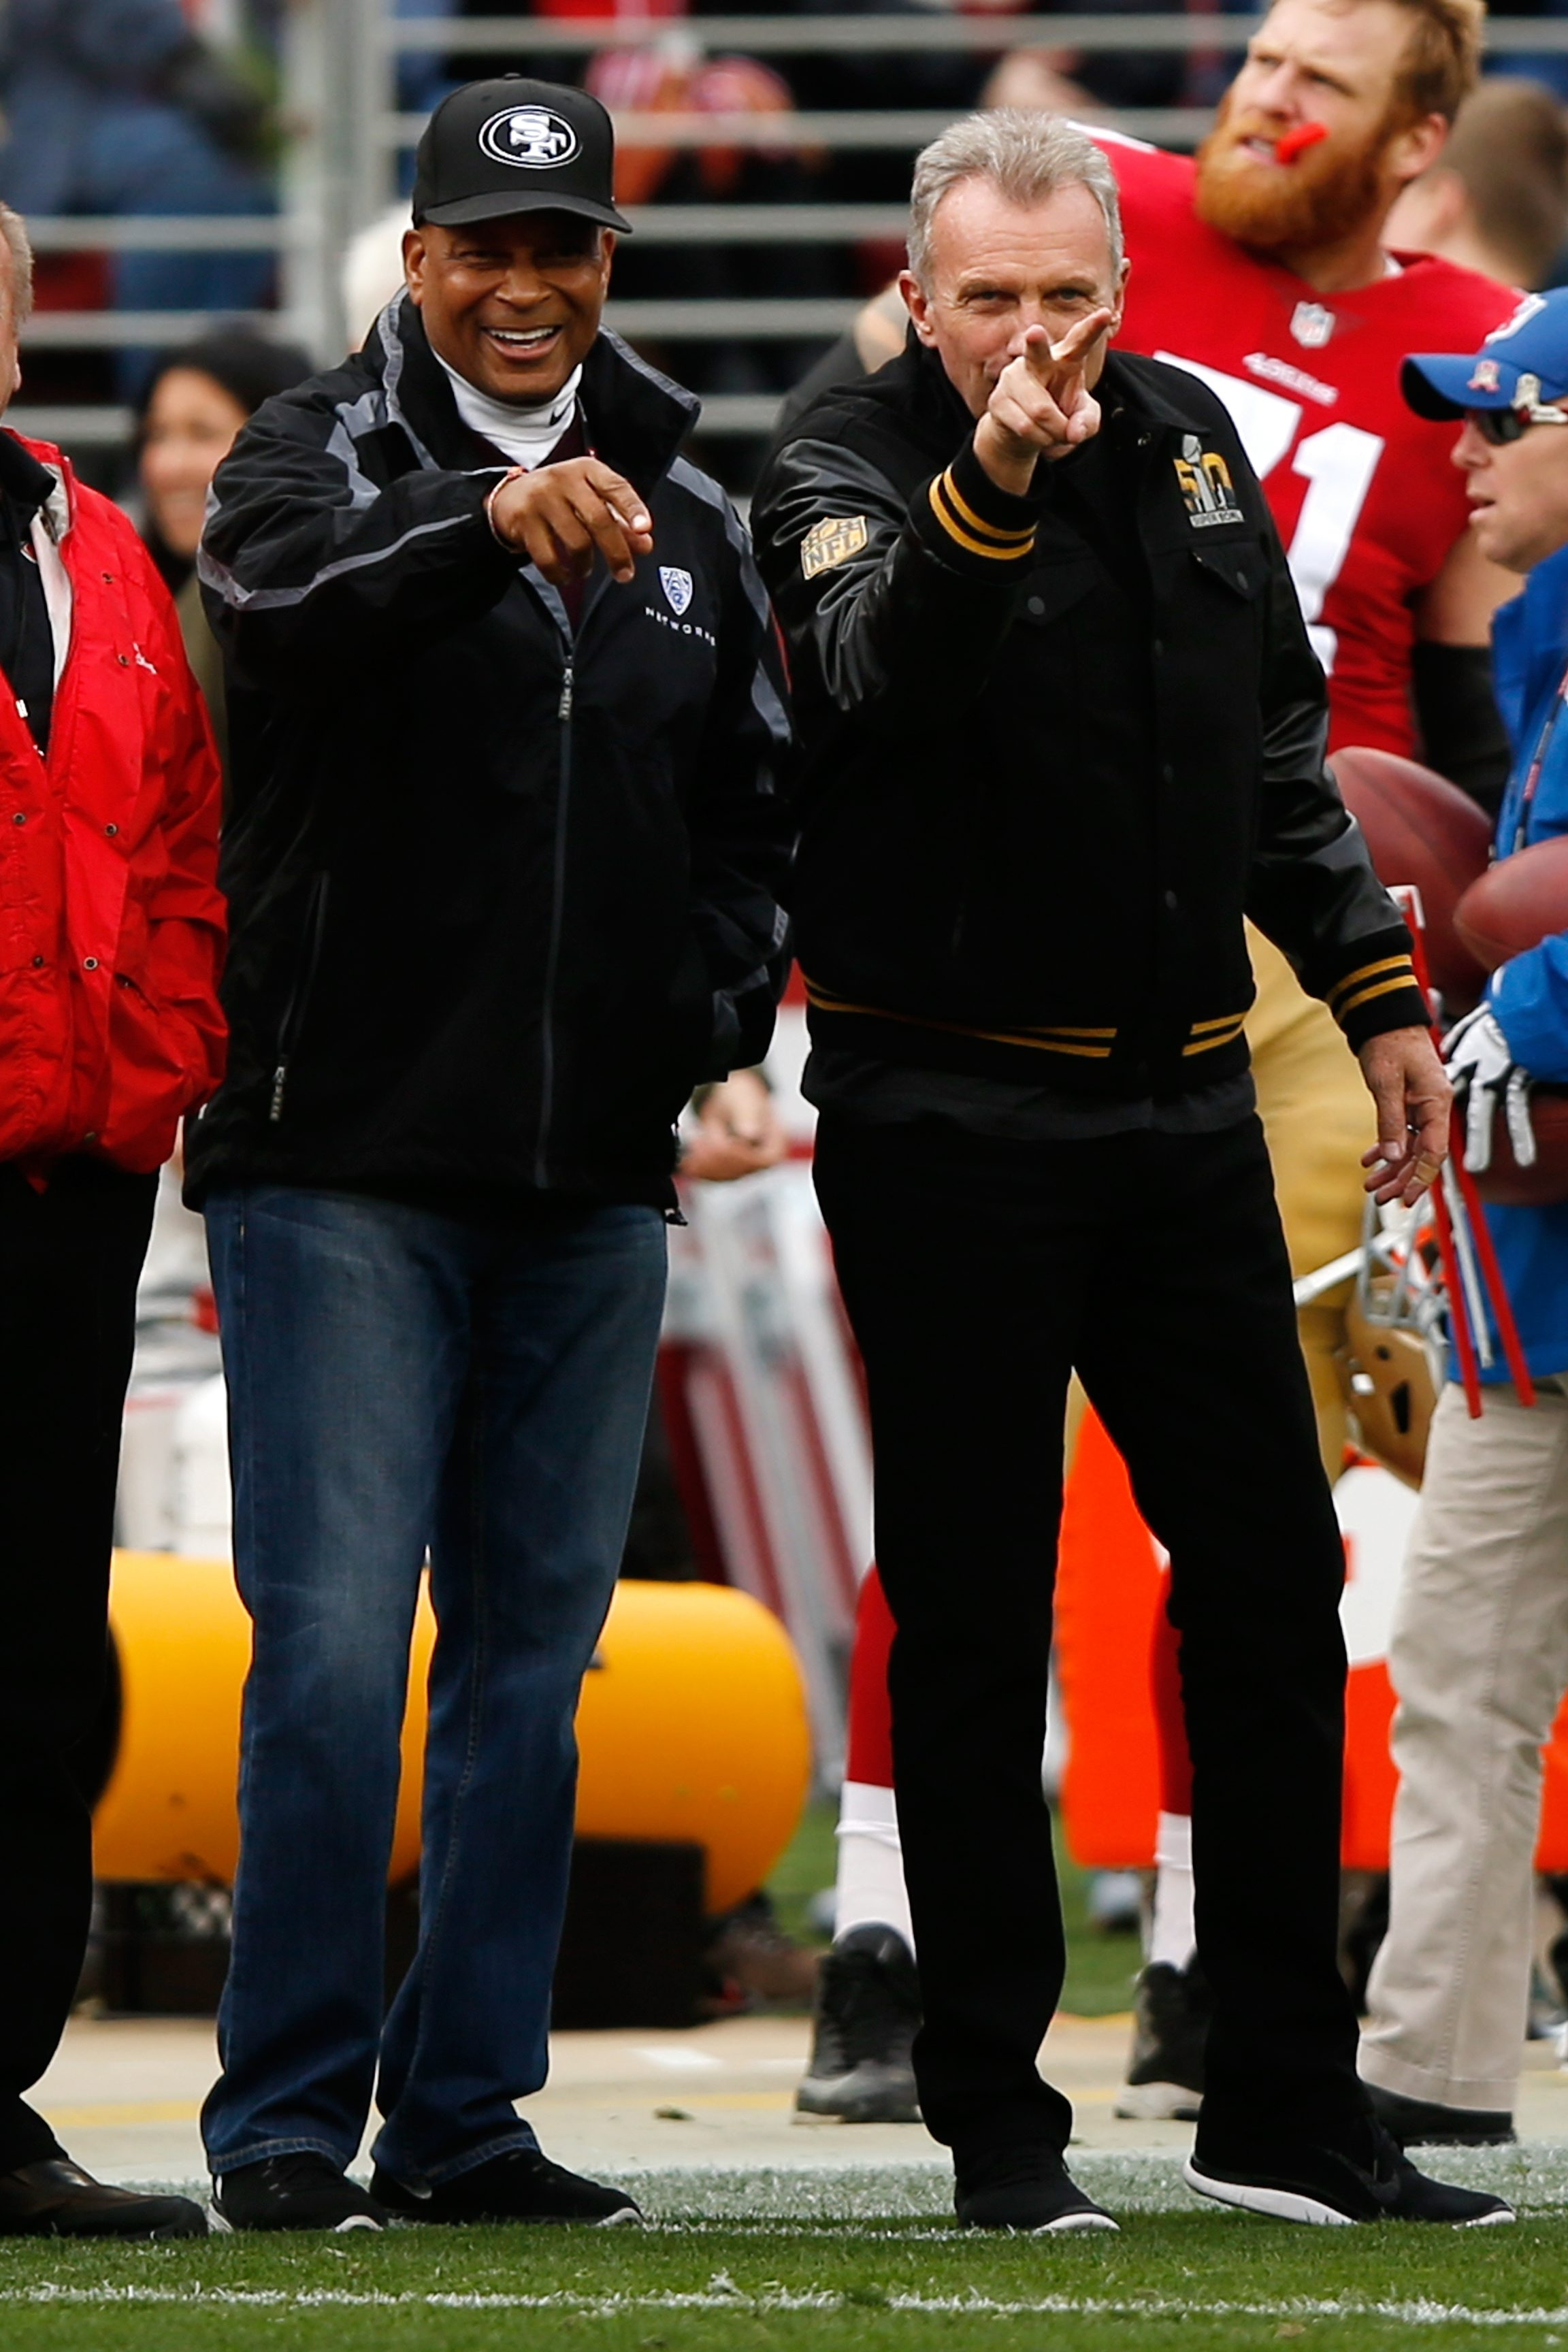 Former San Francisco 49ers Joe Montana and Ronnie Lott will always be remembered for their work in Super Bowls.